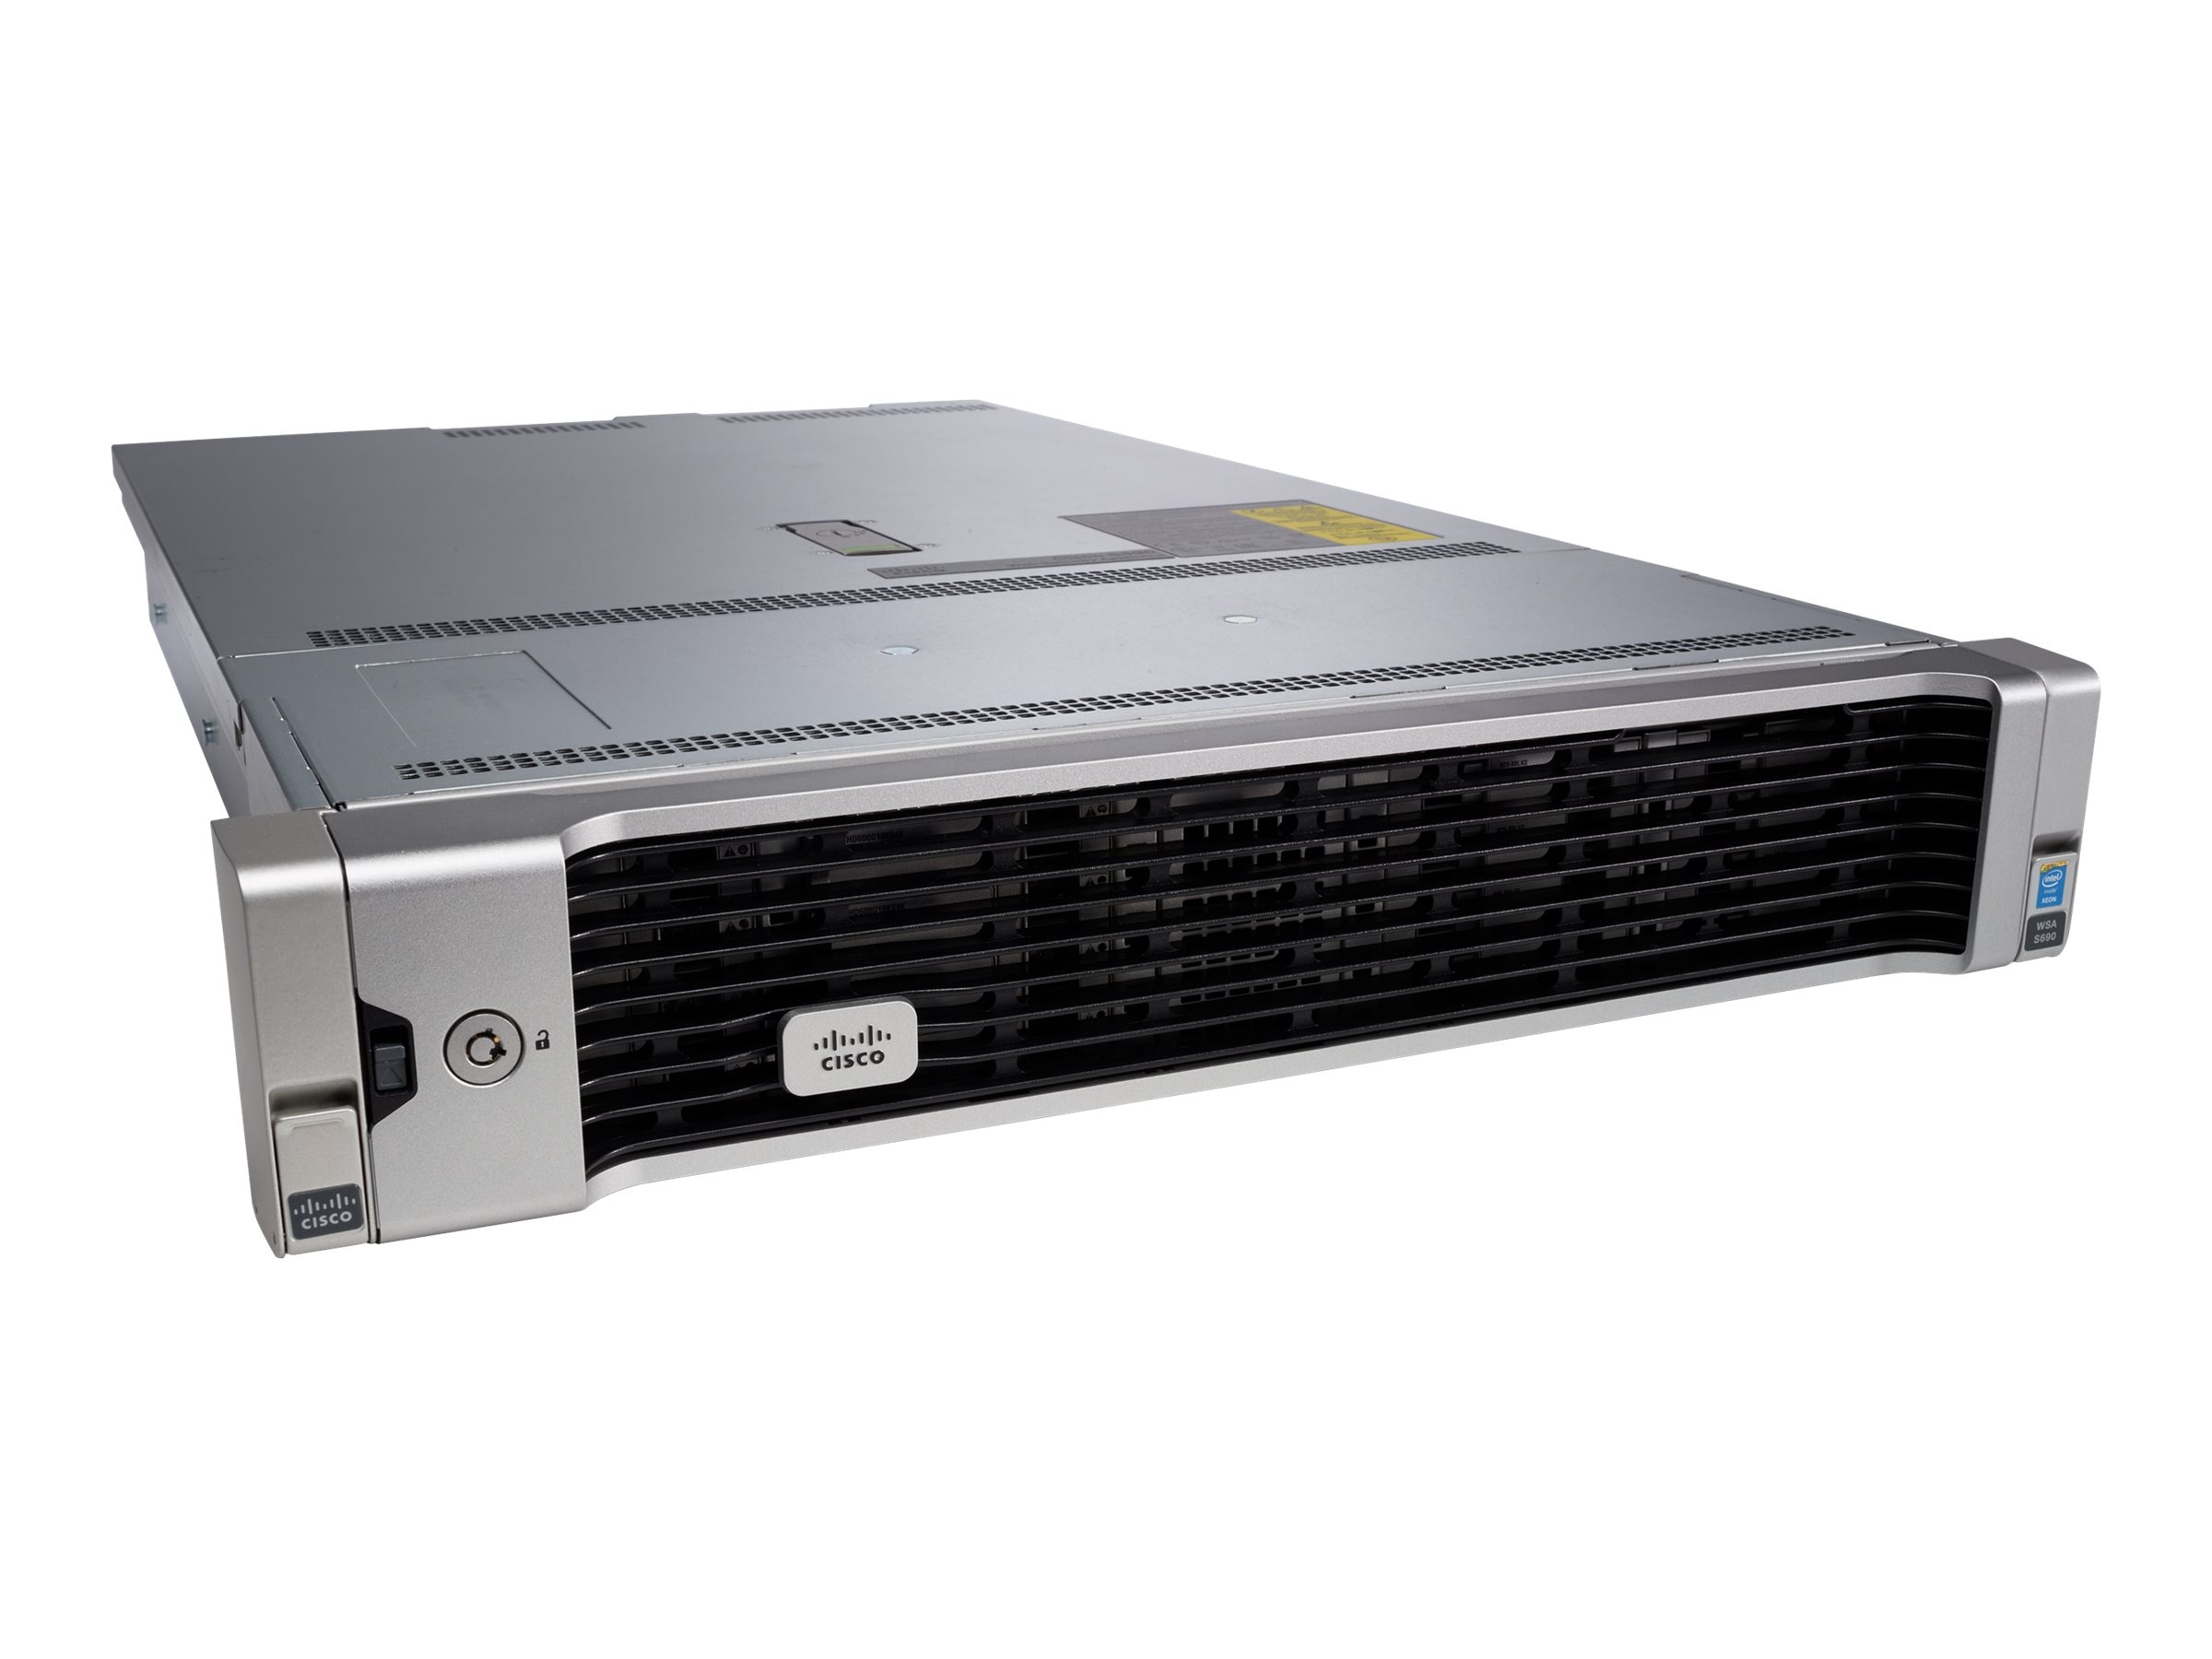 Cisco S690 2U Web Security Appliance